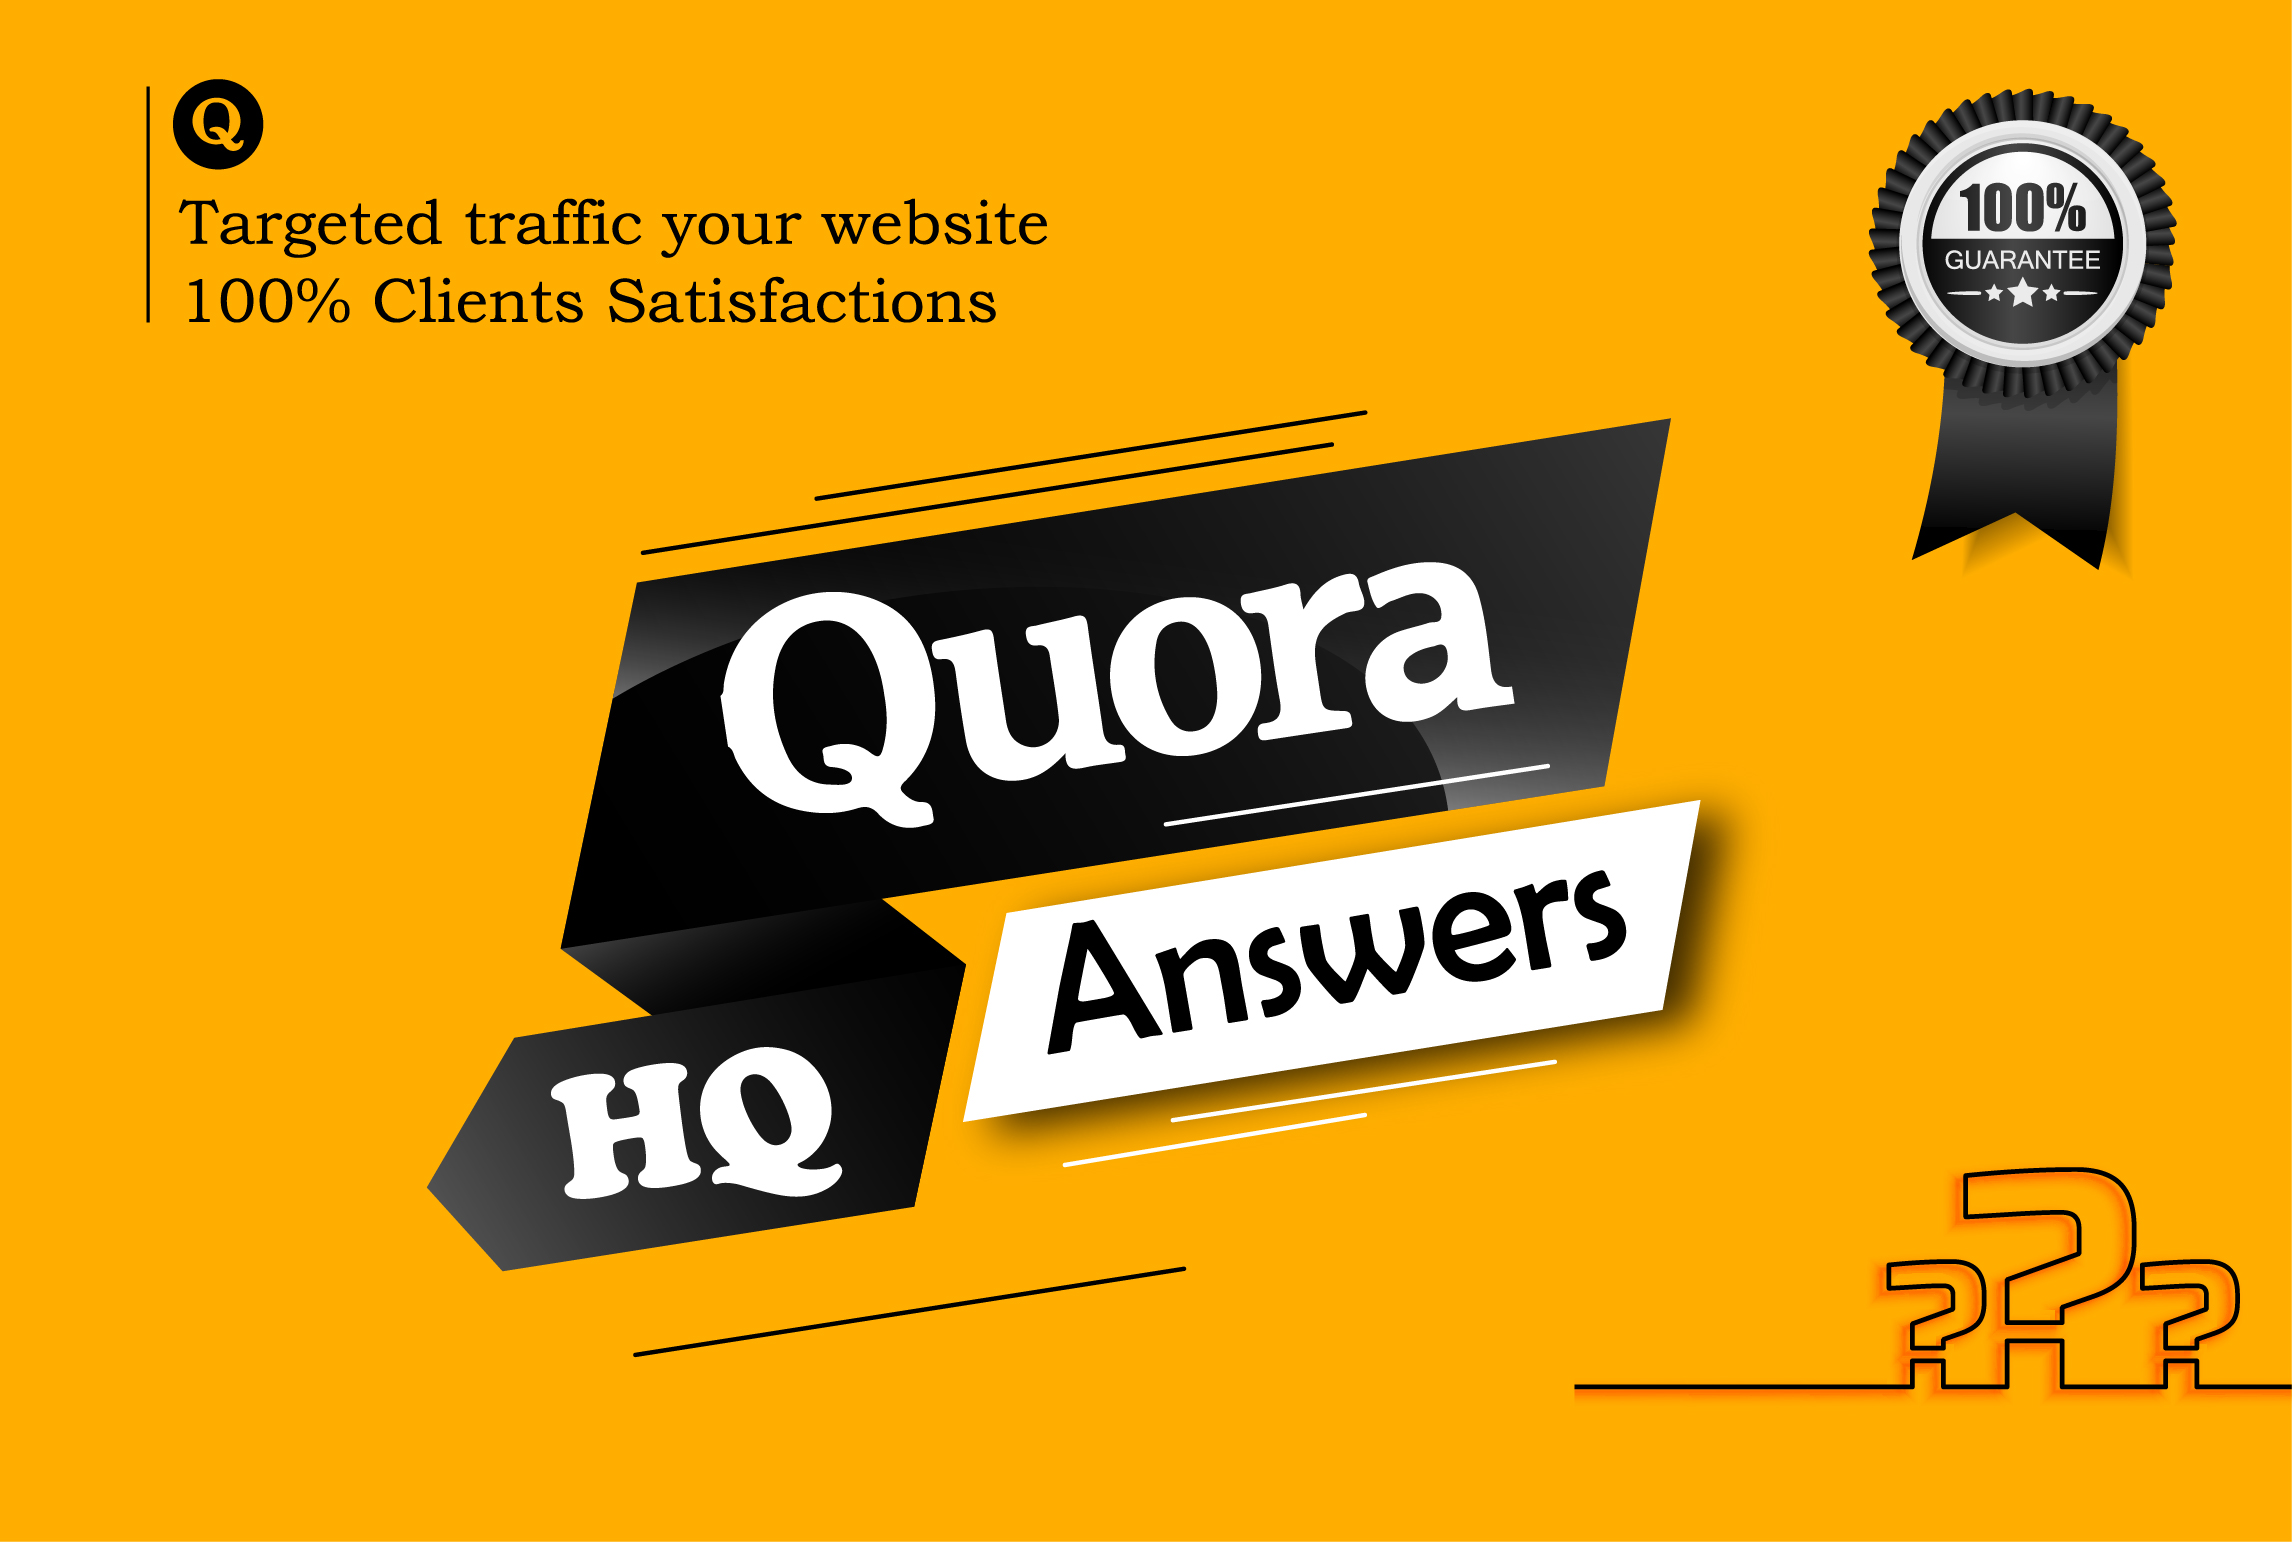 Promote your website & keyword 7 HQ quora answers with backlink